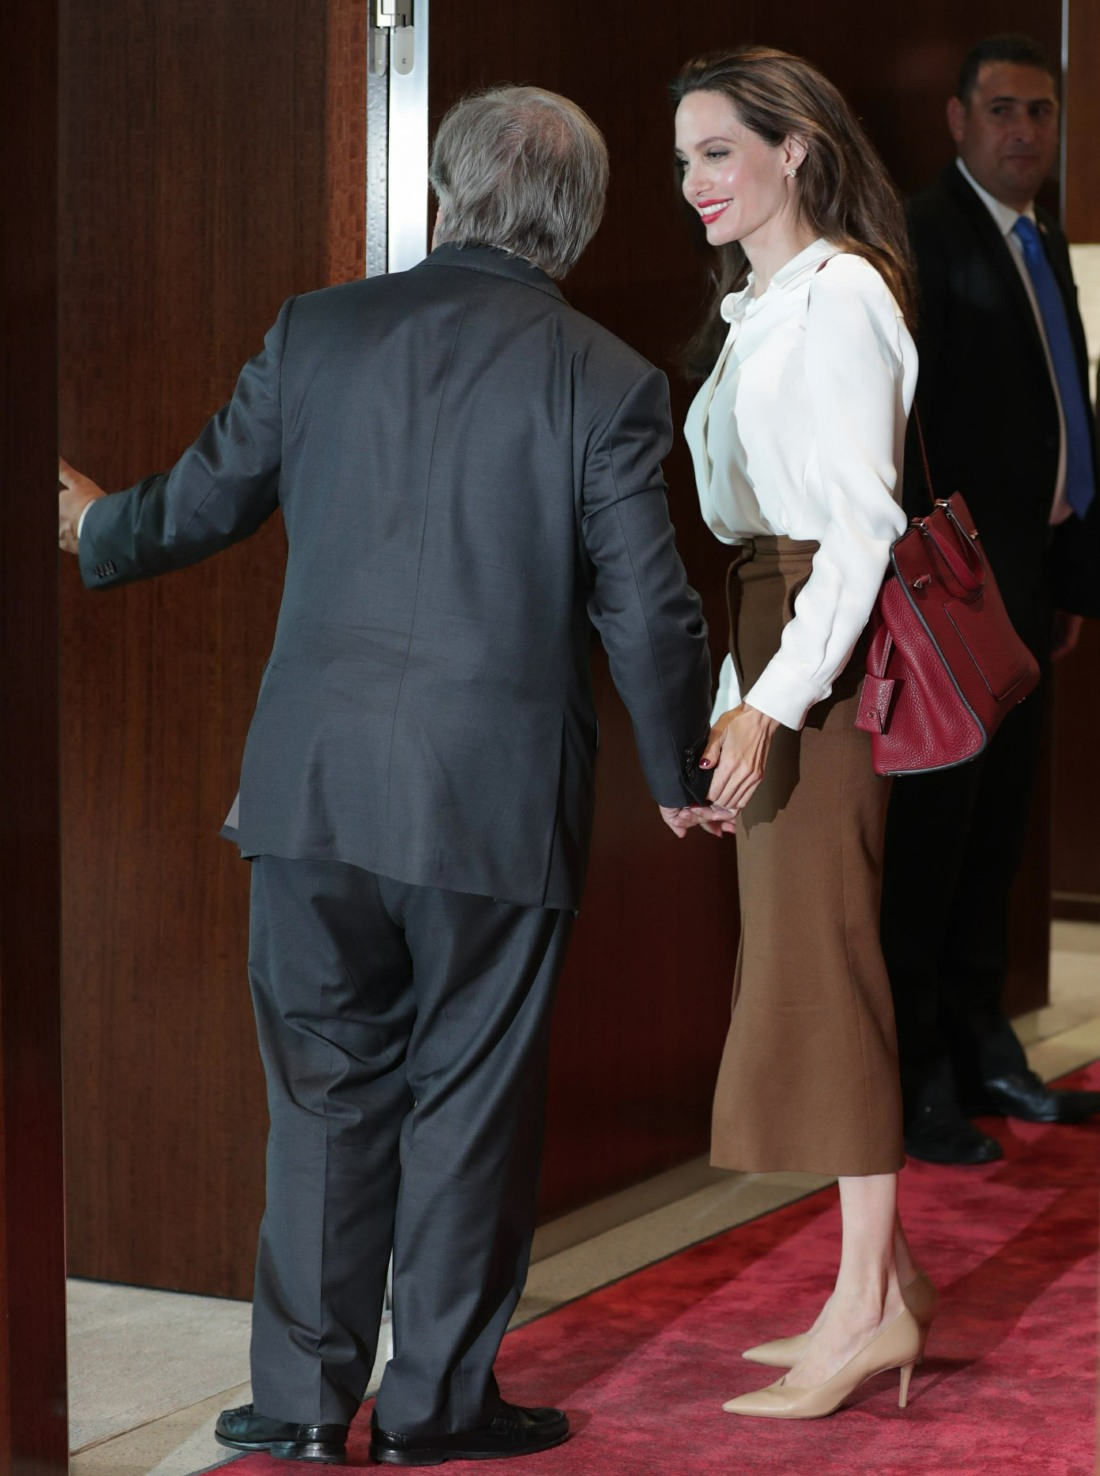 Angelina Jolie and General Antonio Guterres attend the United Nations in New York